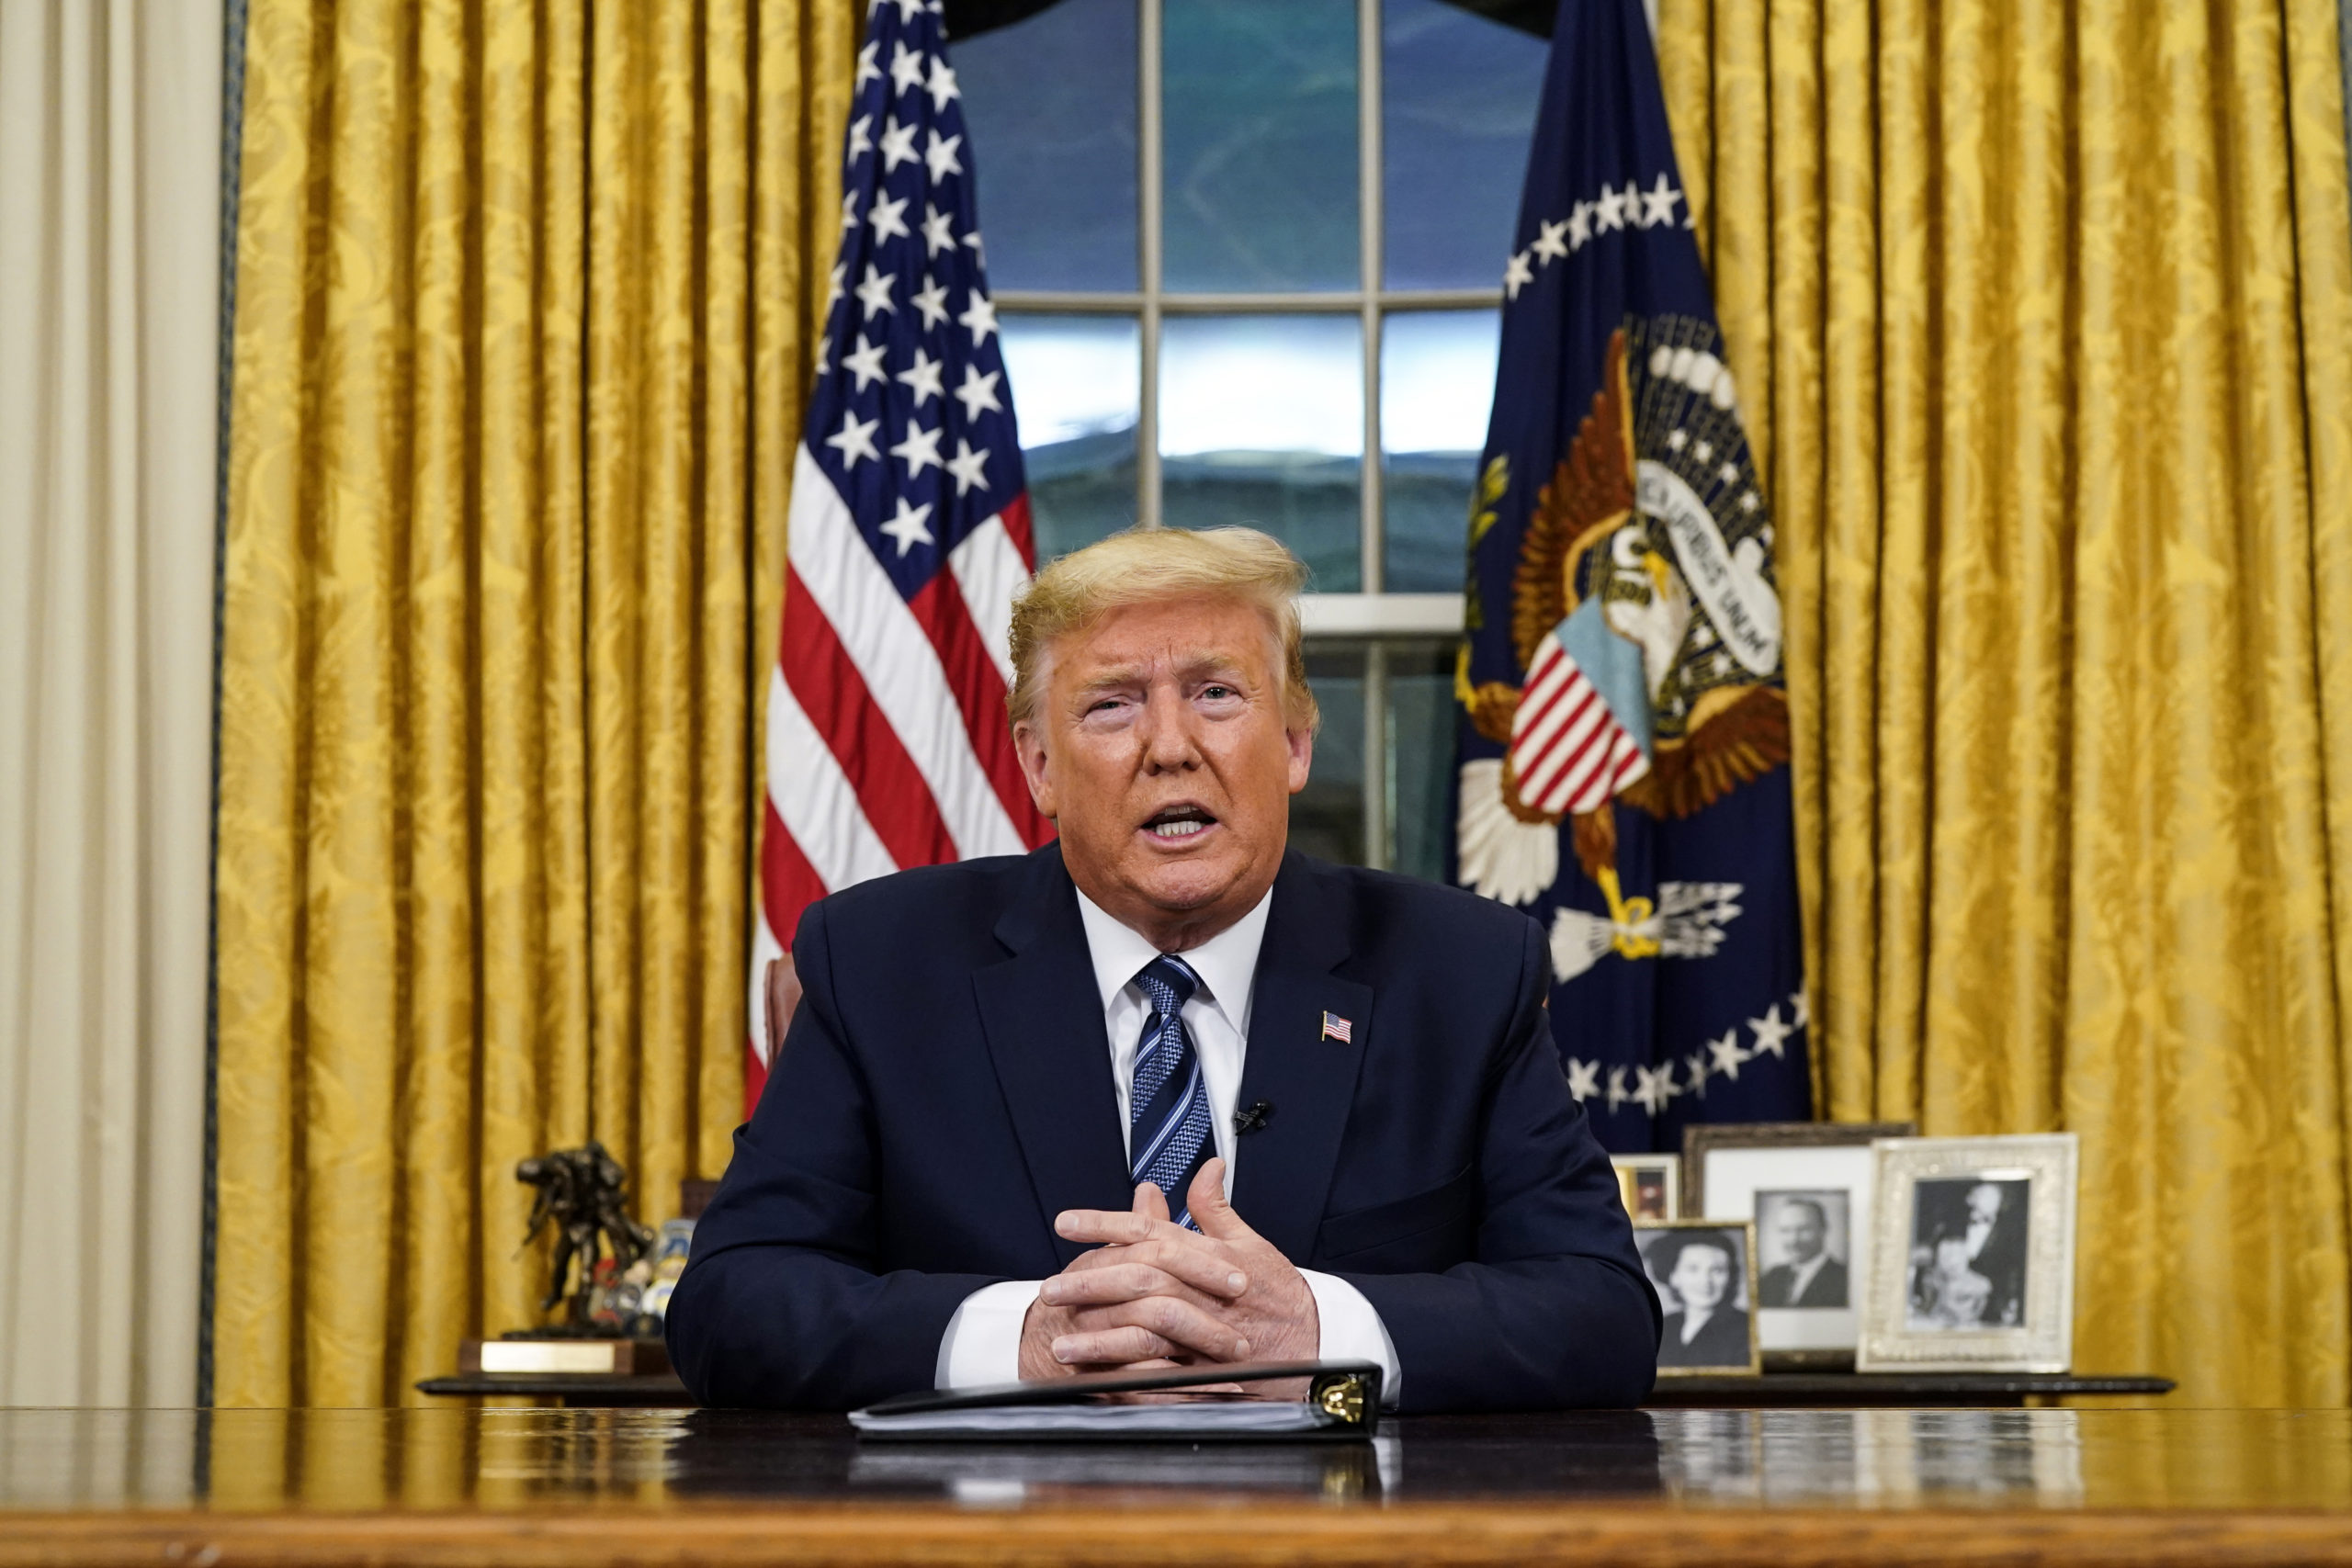 President Donald Trump speaks in an address to the nation from the Oval Office at the White House about the coronavirus Wednesday, March, 11, 2020, in Washington.